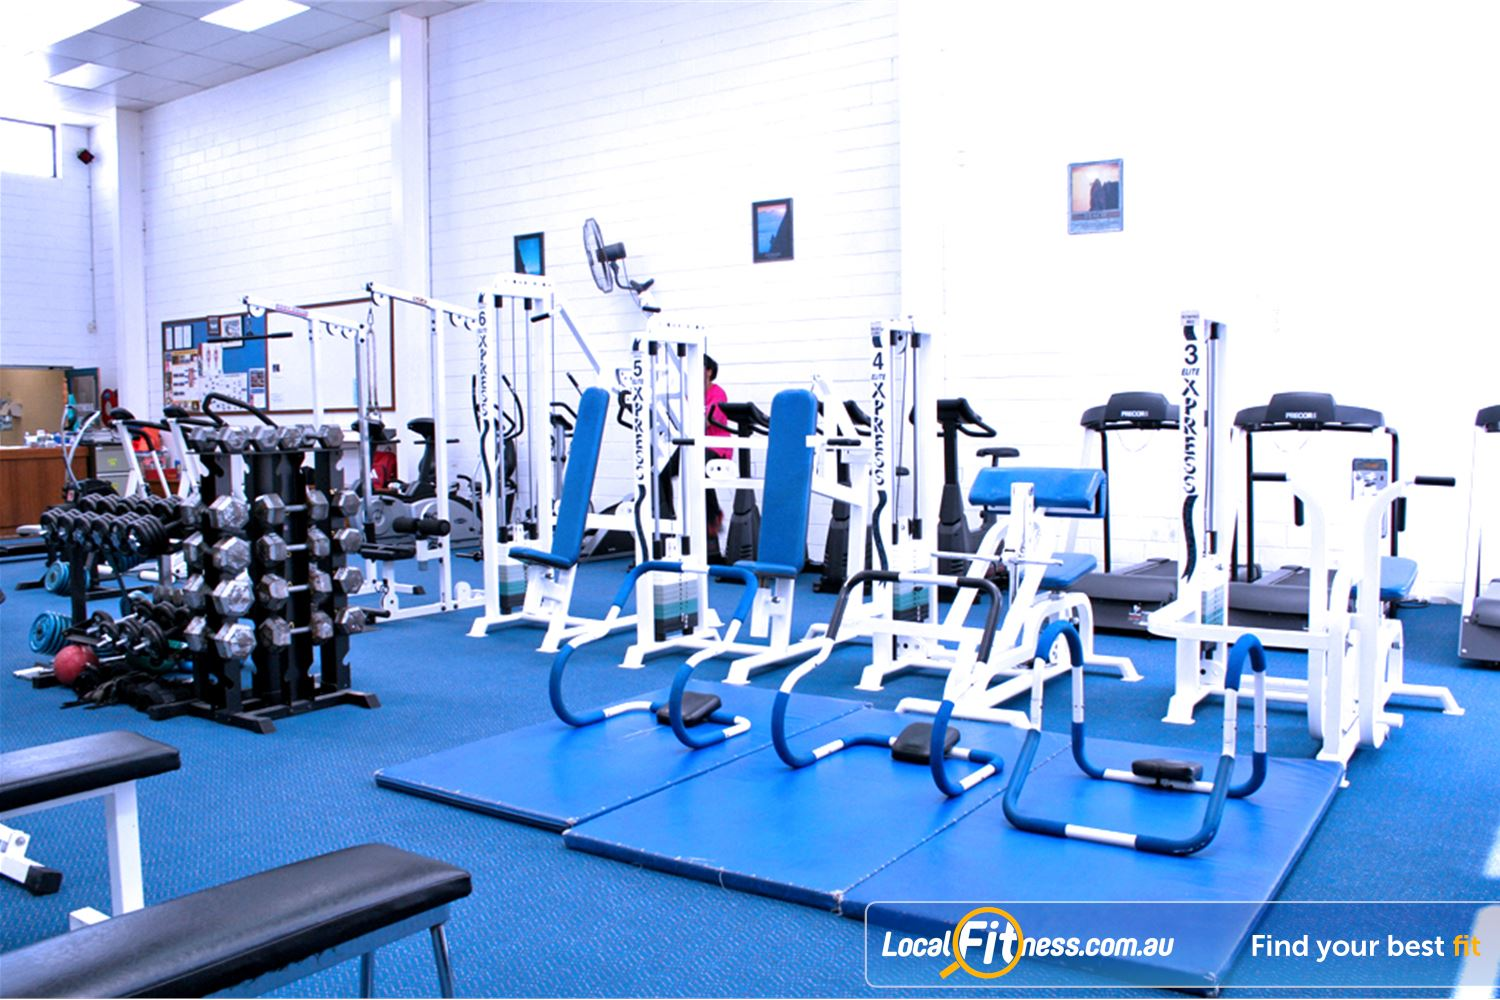 Leading Edge Health & Fitness Near Burwood East A personal gym space with a full range of equipment.